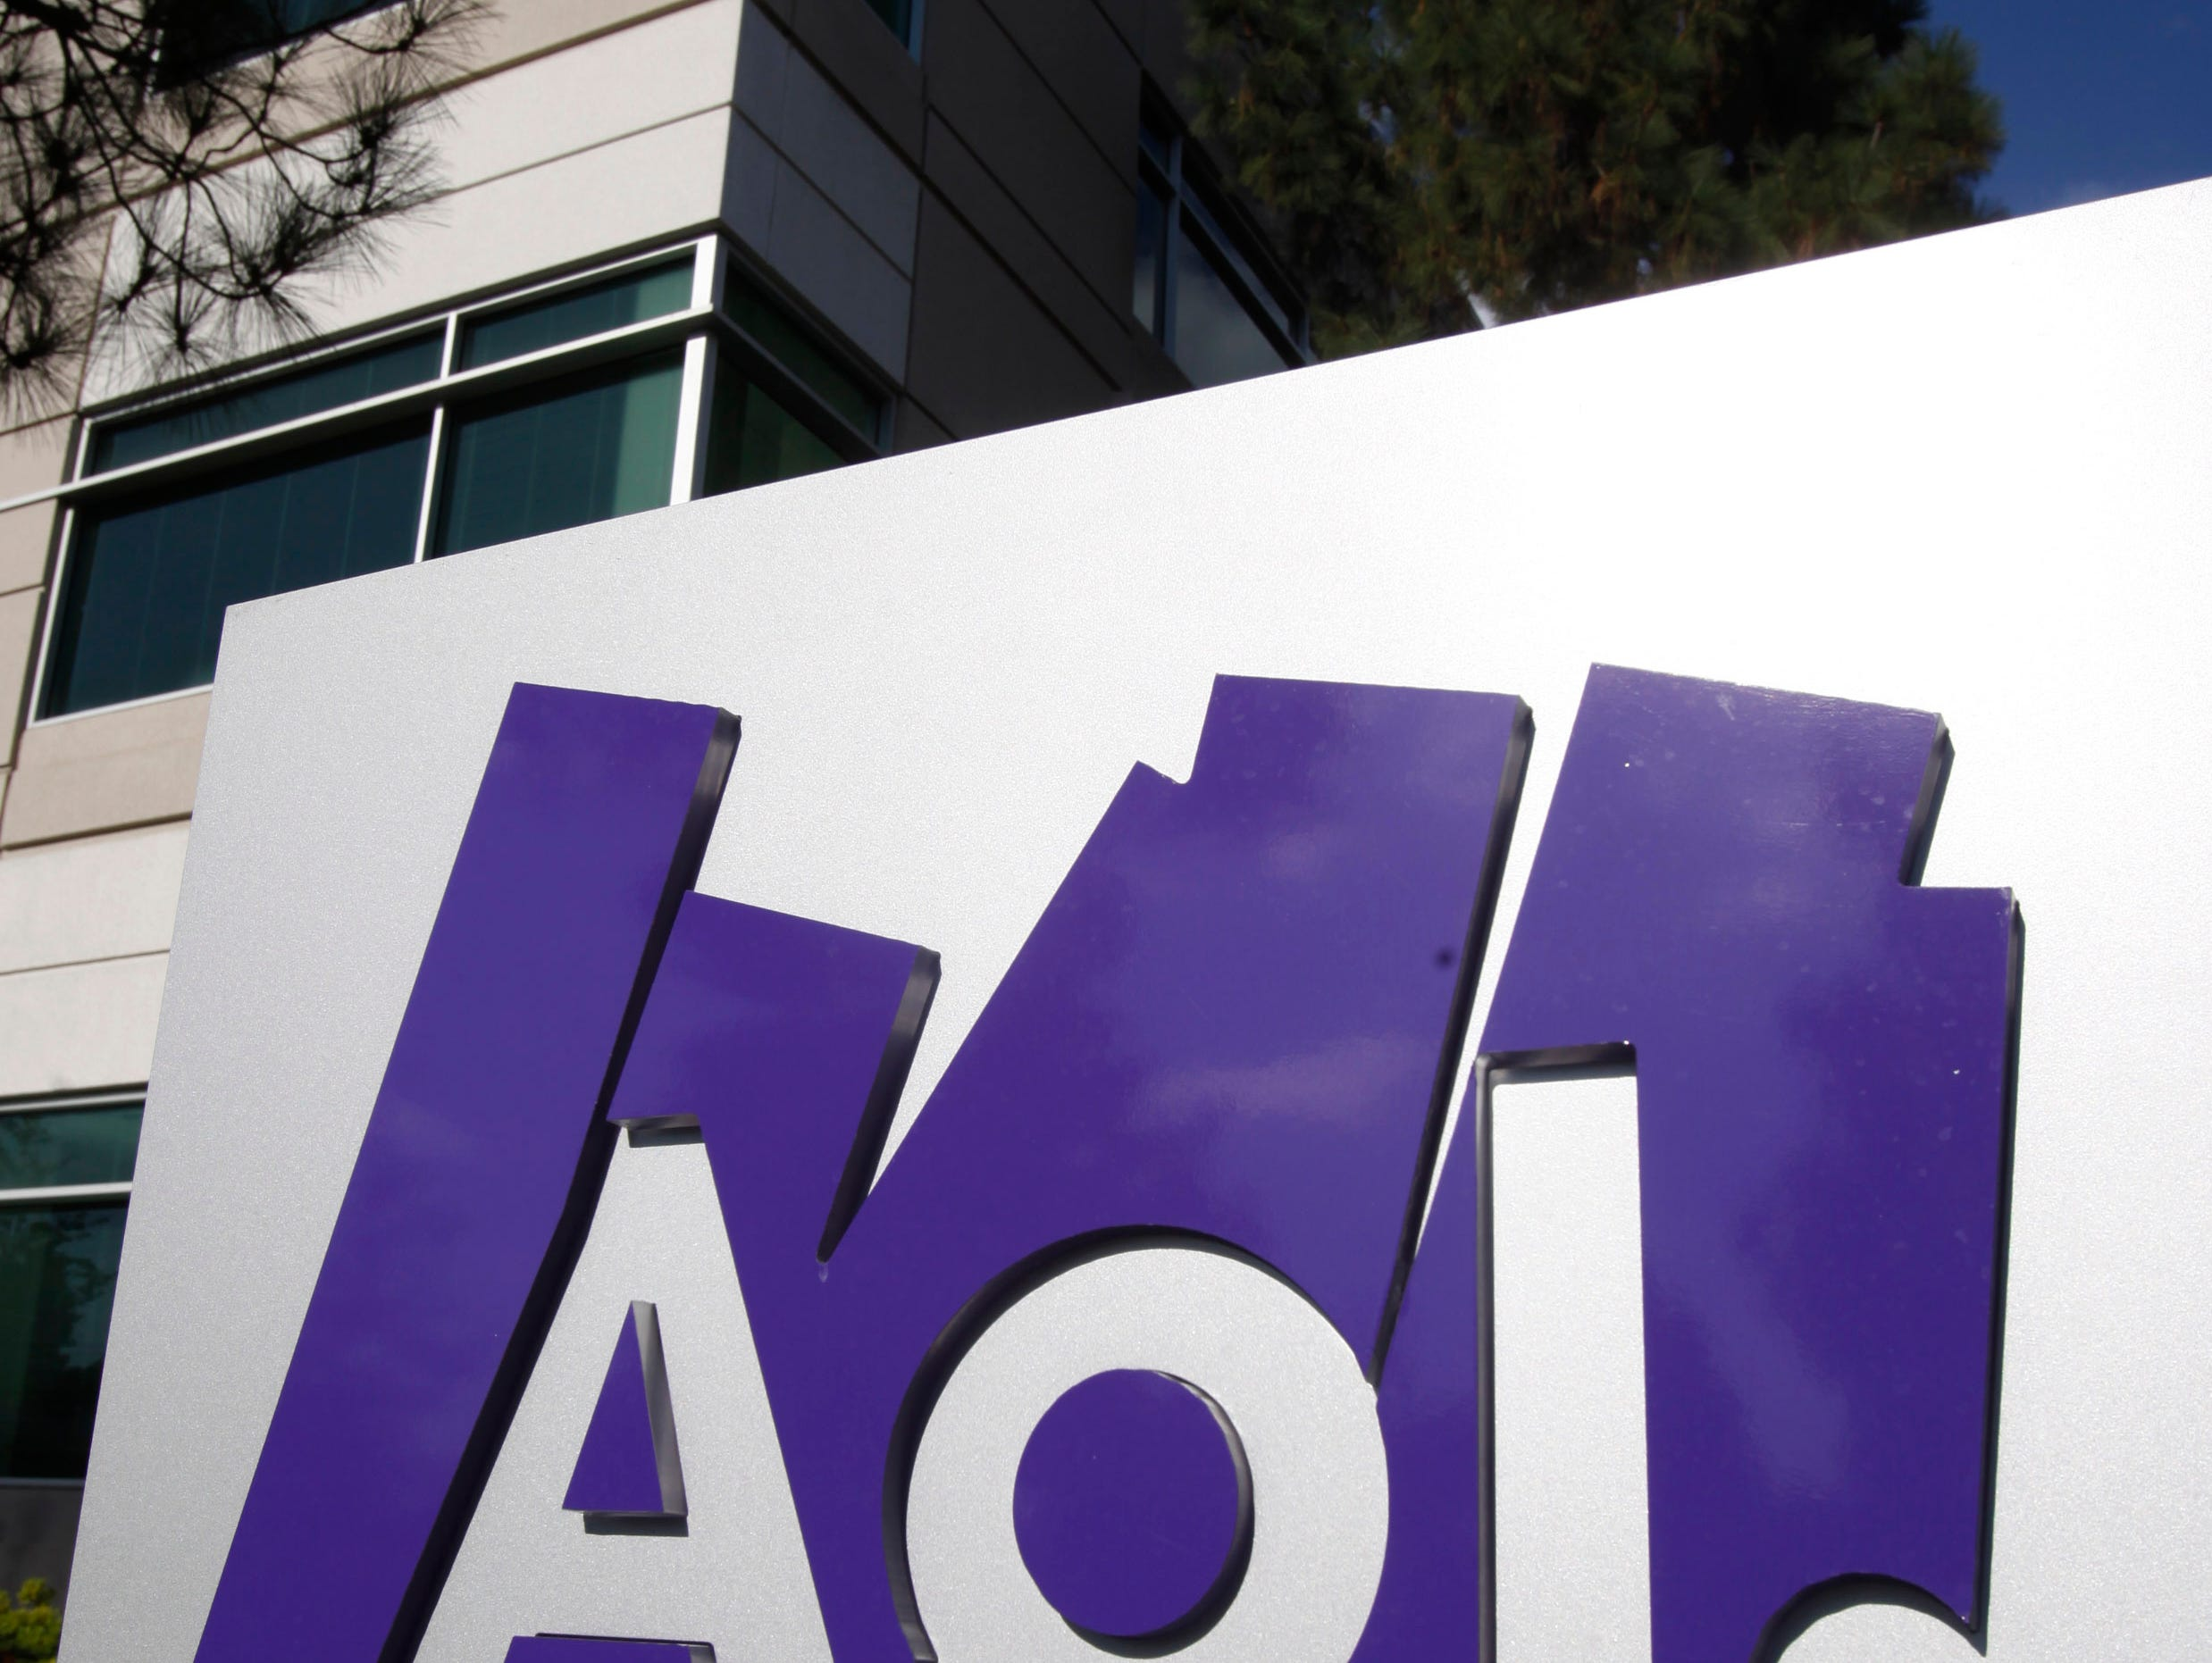 FILE - This Thursday, Oct. 14, 2010, file photo, shows the exterior of AOL offices in Palo Alto, Calif. Verizon Communications Inc. is buying AOL Inc. for about $4.4 billion, advancing the telecomís push in both mobile and advertising fields, the com